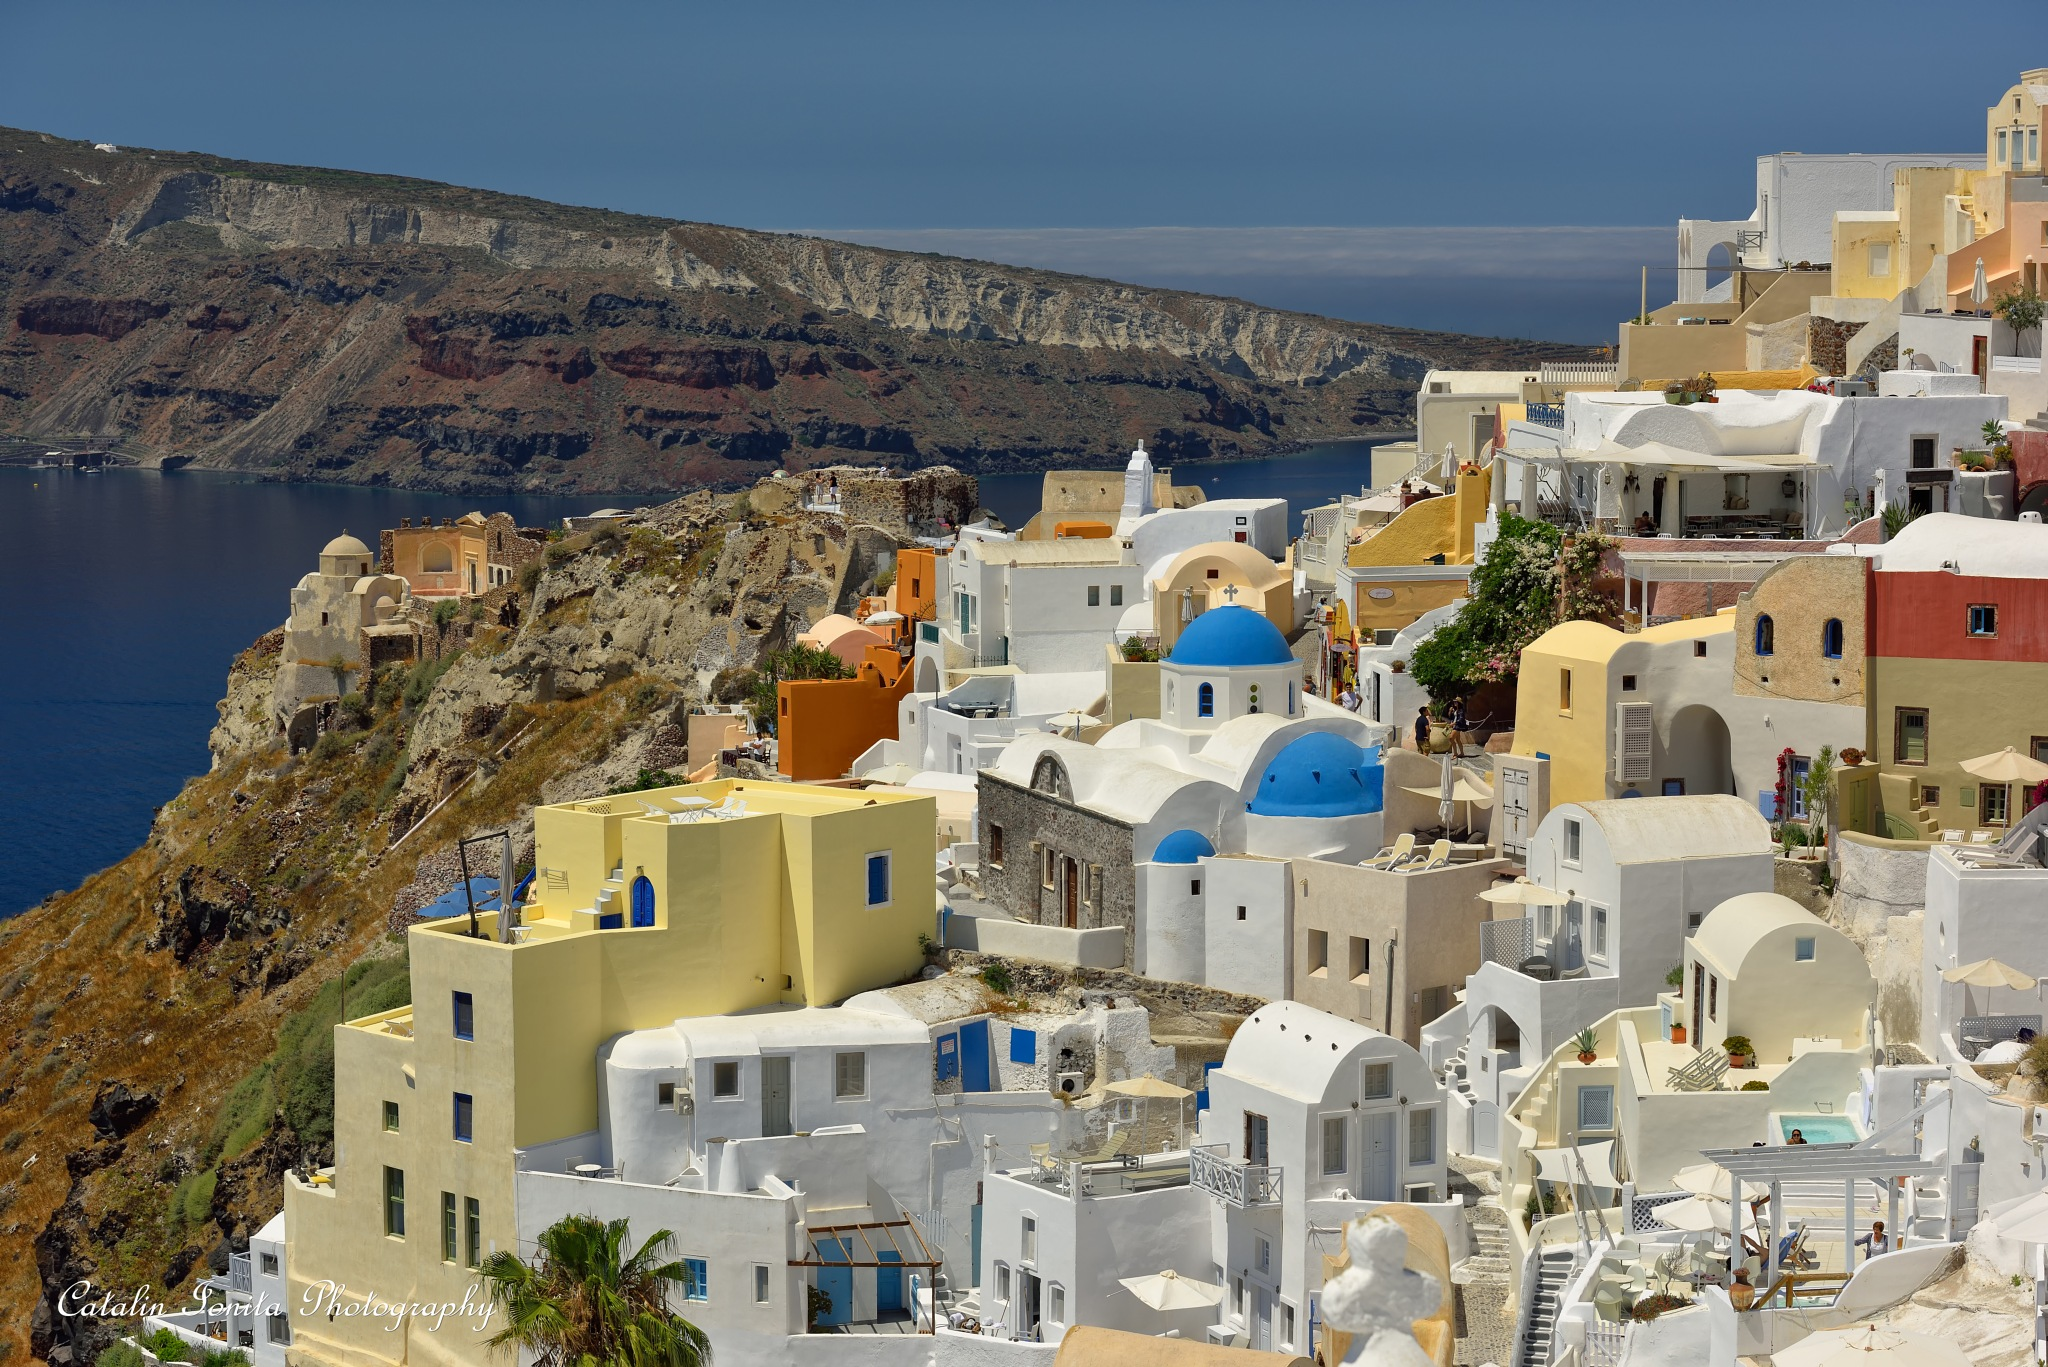 Oia by CatalinIonitaPhotographer